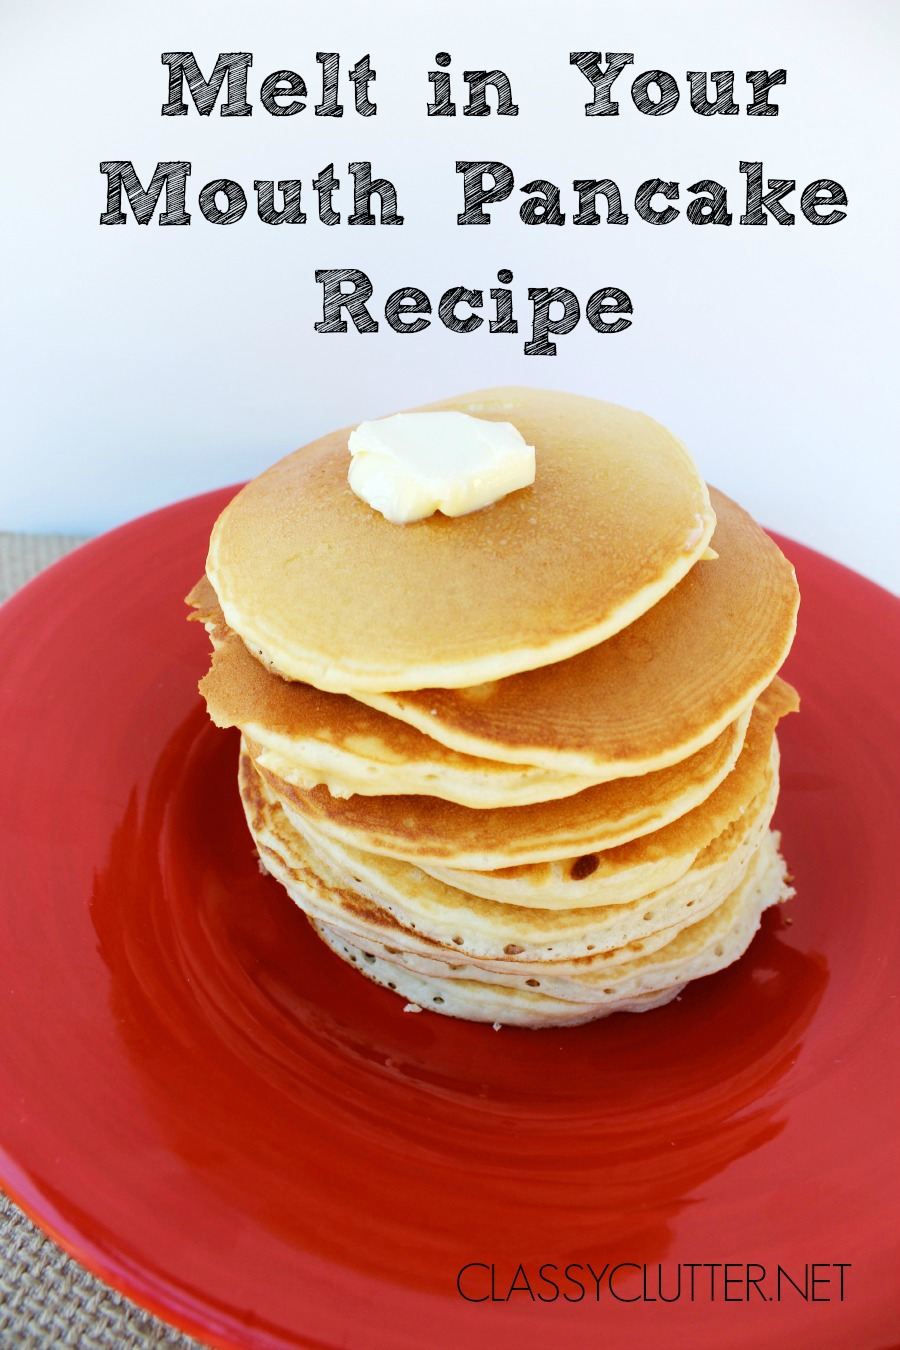 pancake pancakes recipe easy recipes bisquick quick syrup simple ultimate ever melt mouth buttermilk homemade breakfast classyclutter mix plain baking